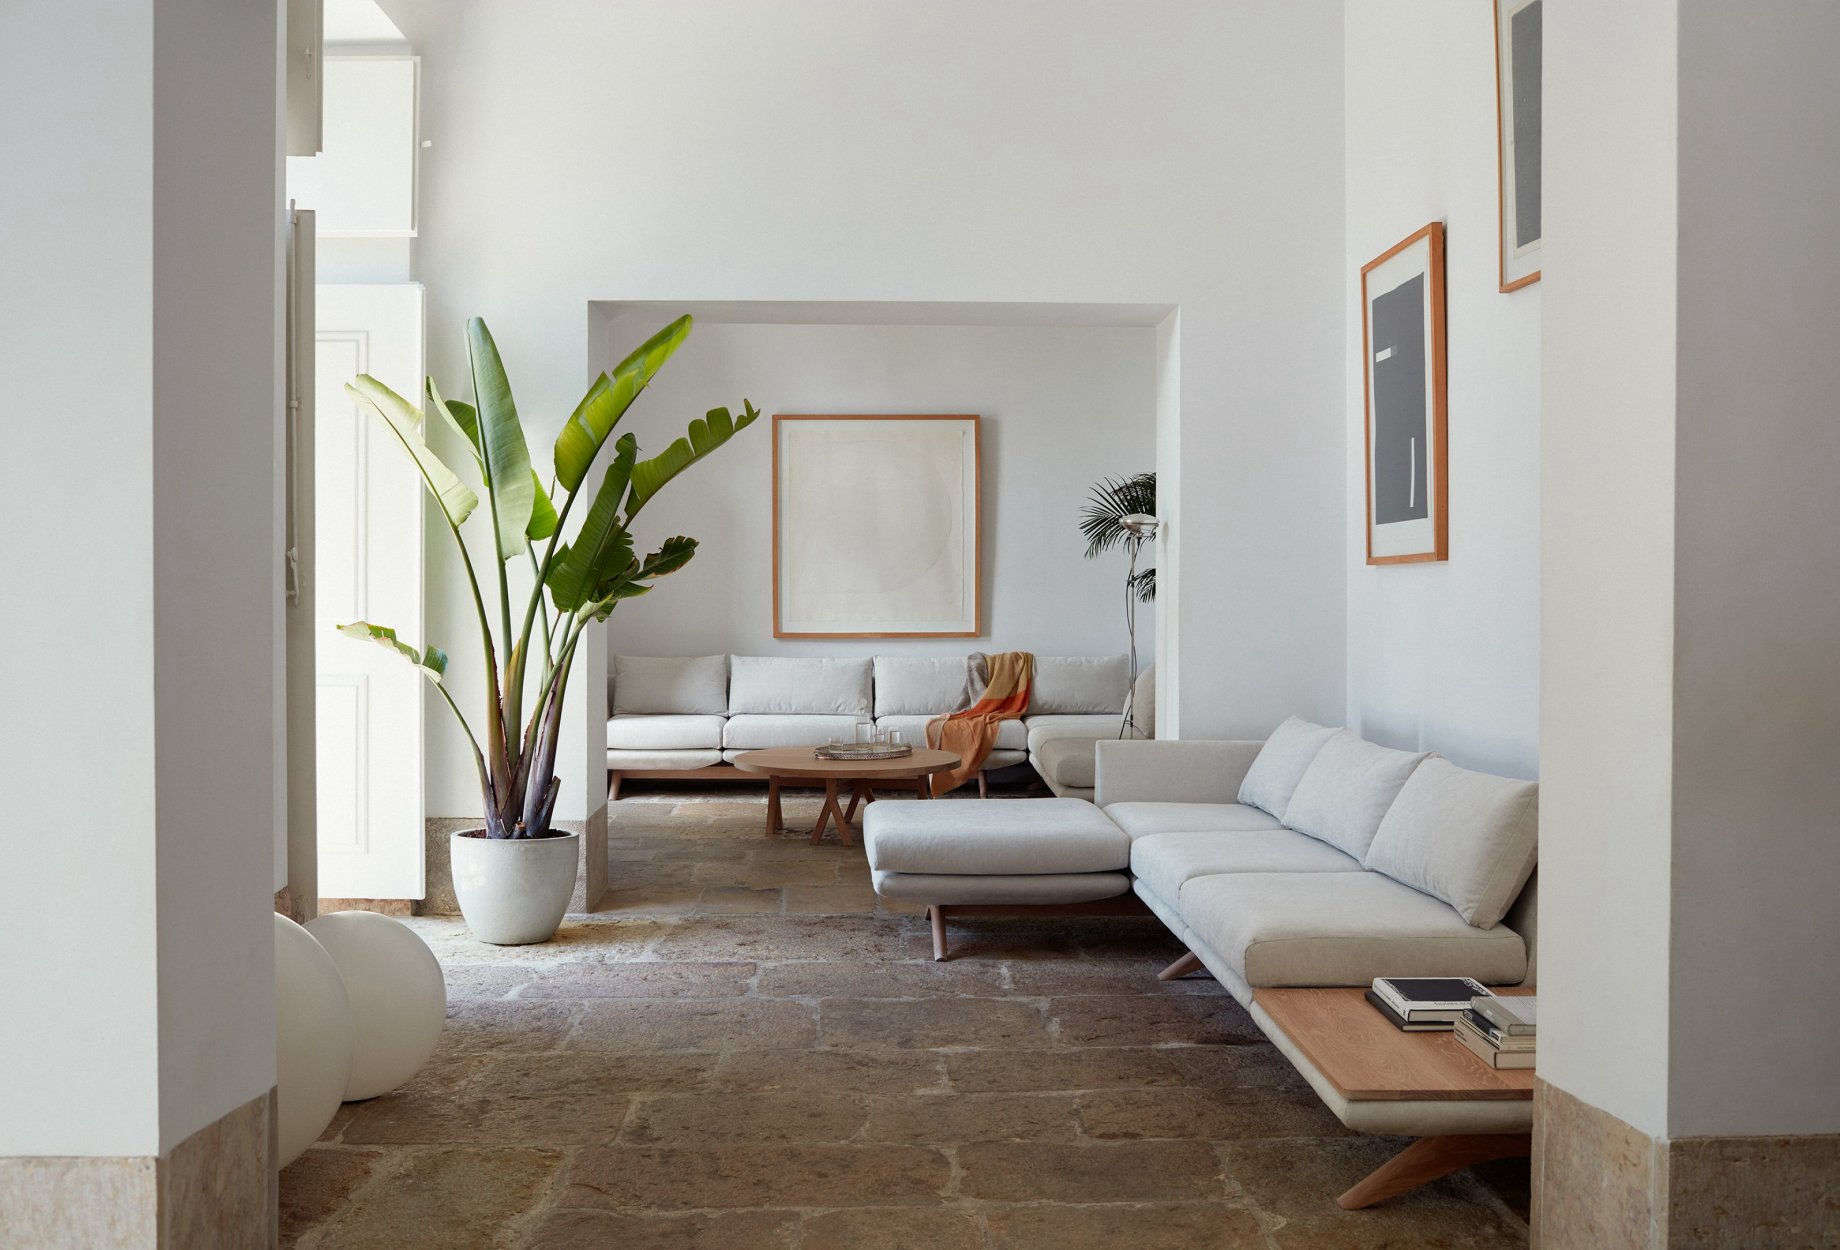 10 Easy Pieces: Simple Wood Coffee Tables - Remodelista